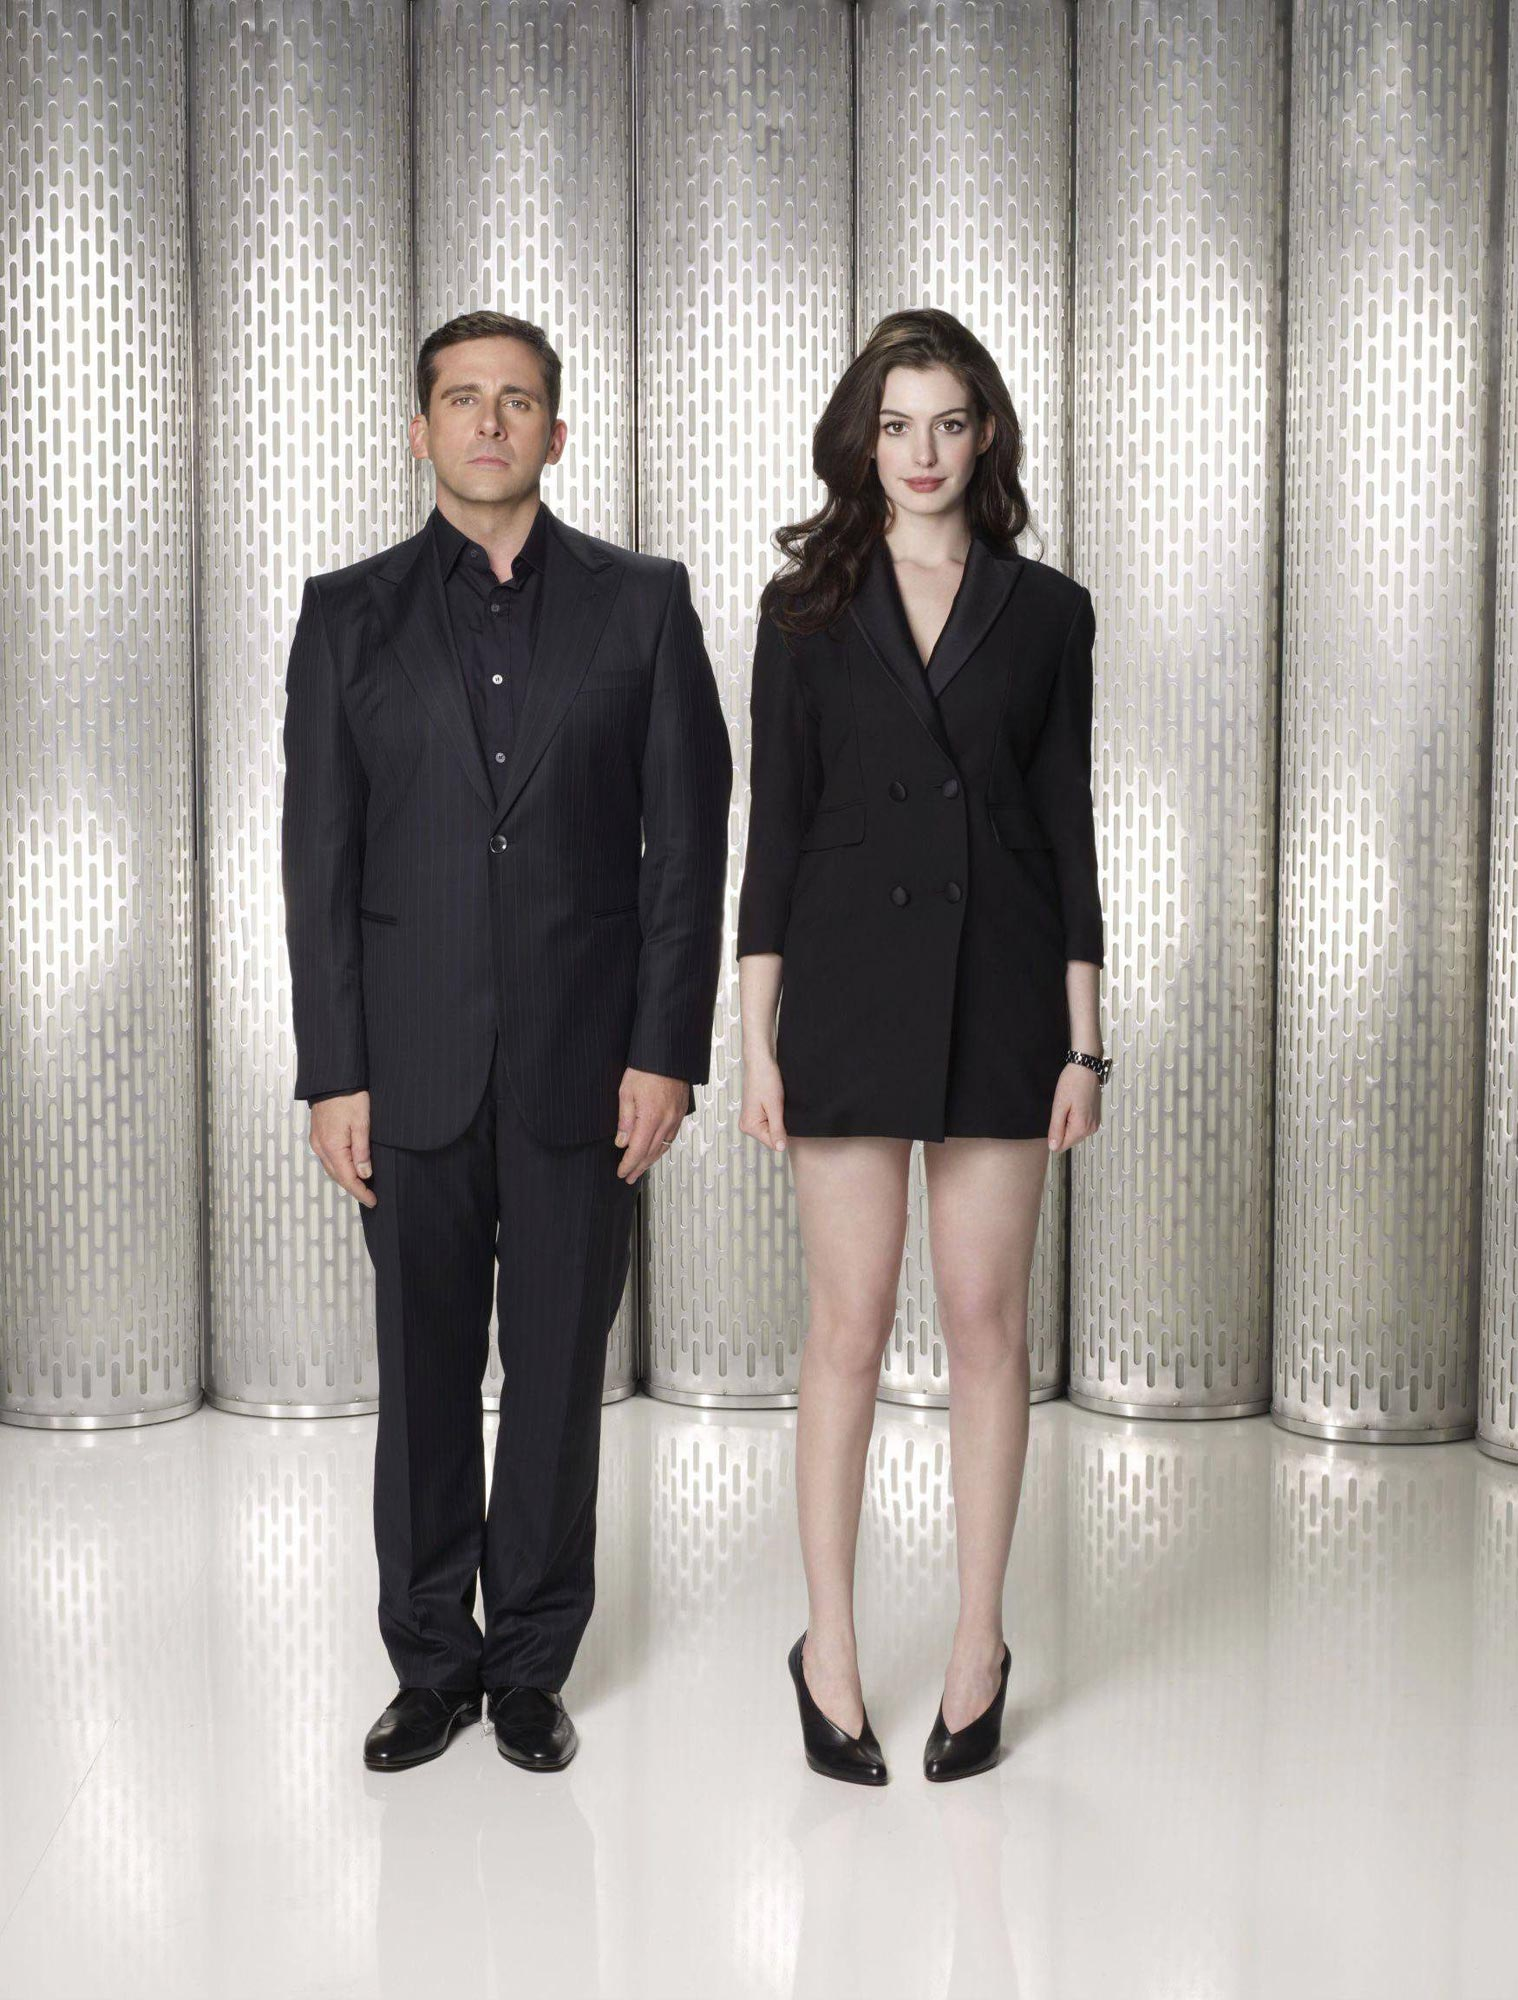 Best Figure In Hollywood Anne Hathaway Leggy in...